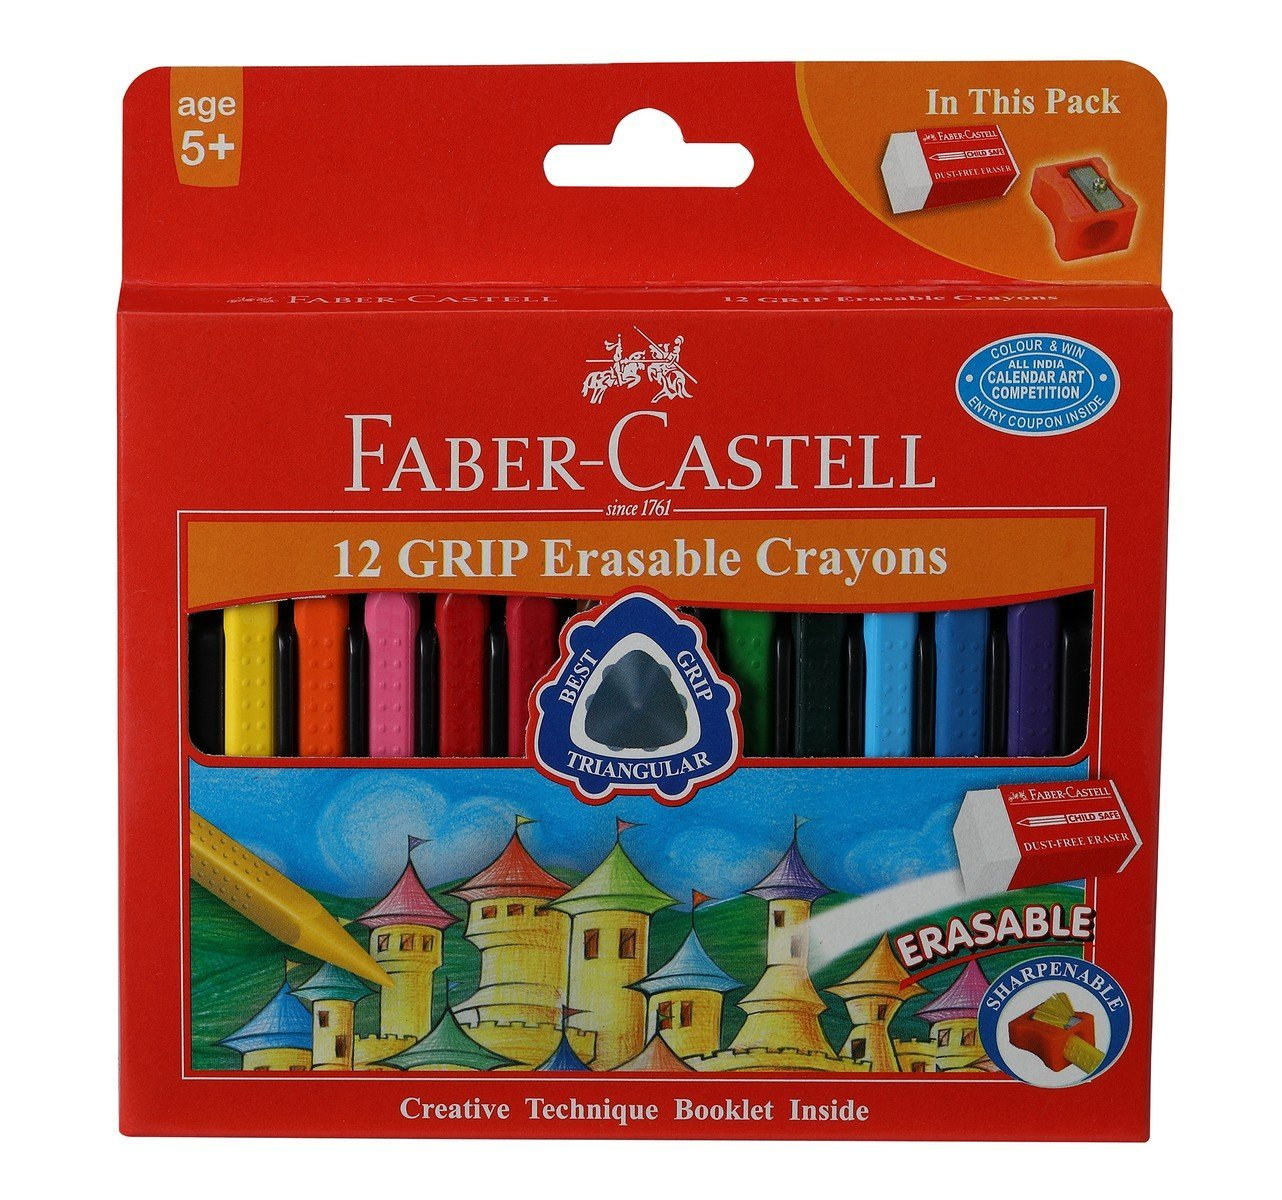 Faber Castell 12 Grip Erasable Crayons Image